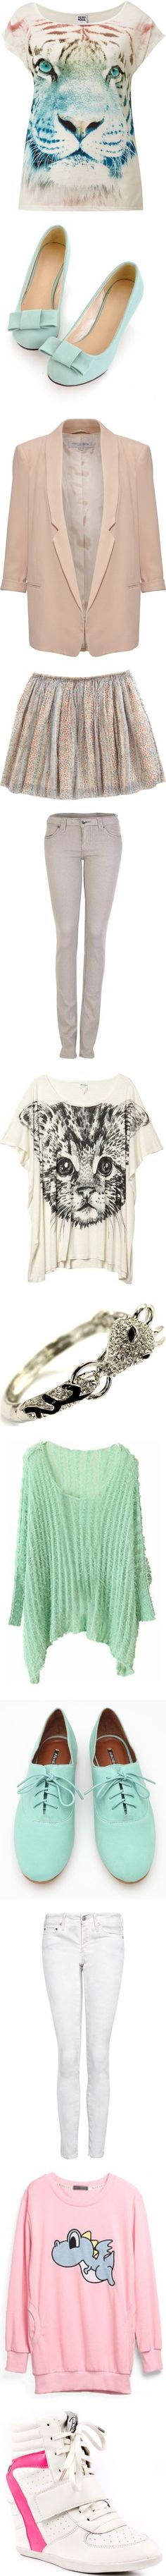 """LK"" by schinka ❤ liked on Polyvore"